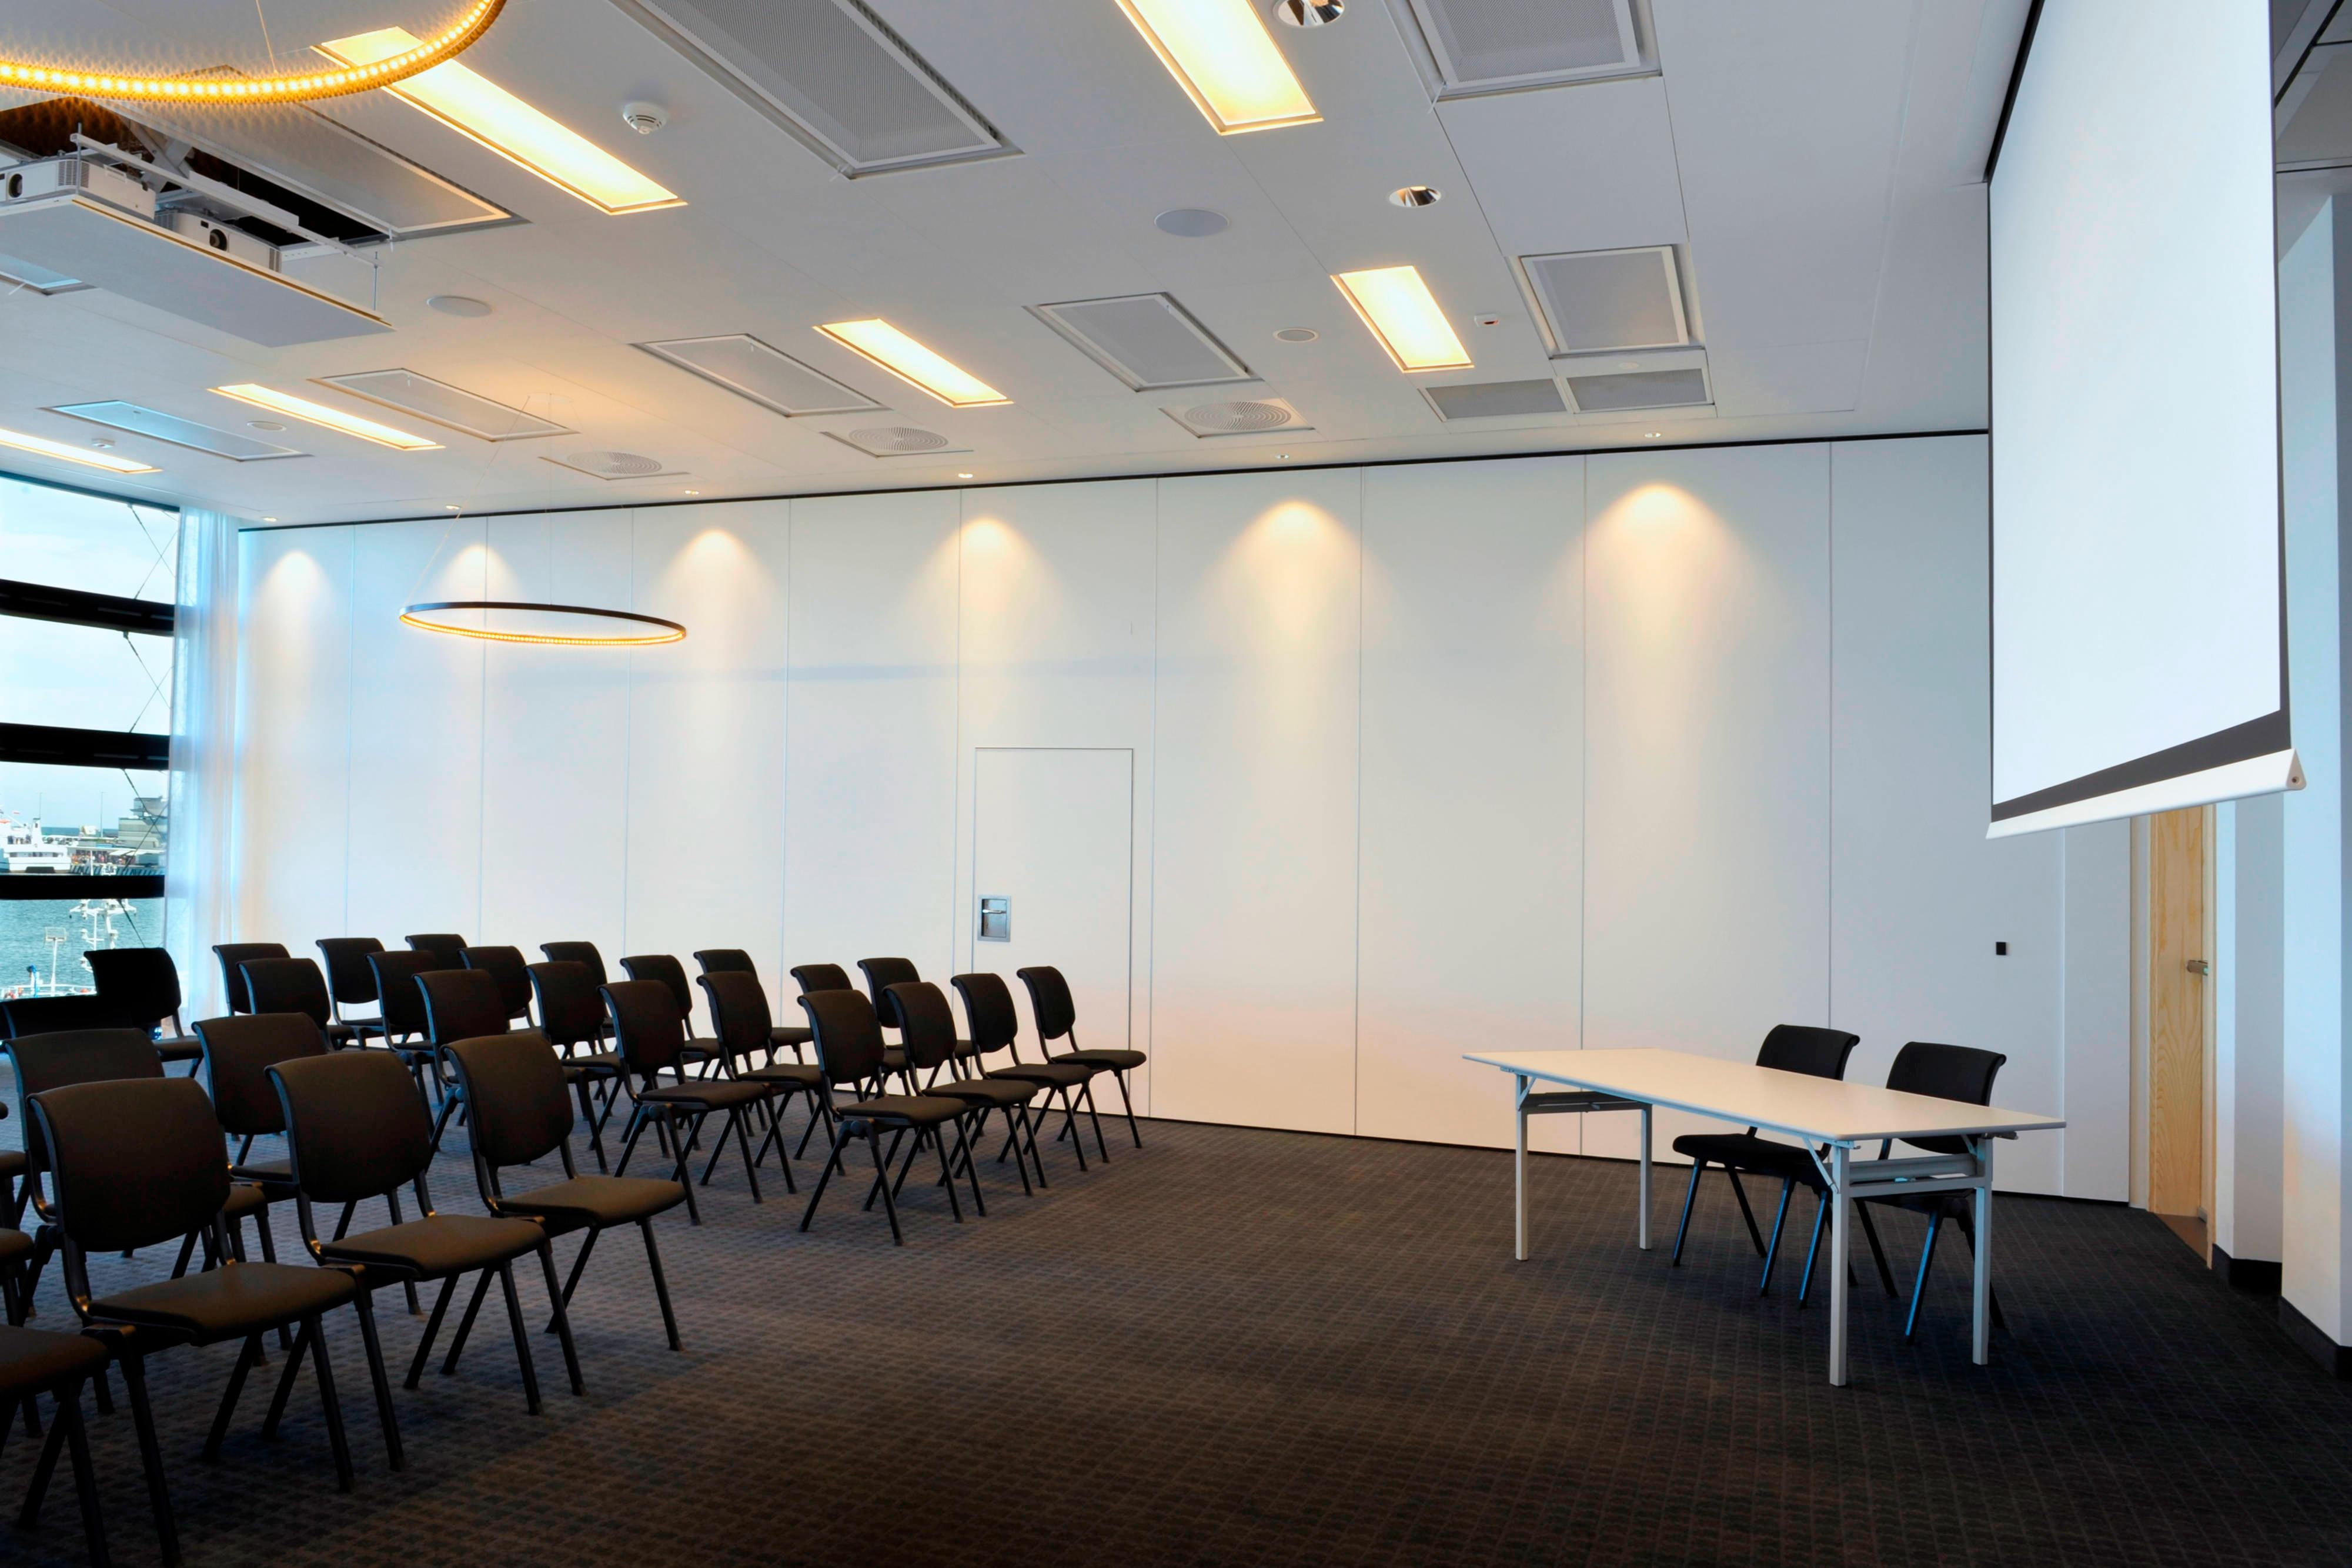 Meeting room in classroom style